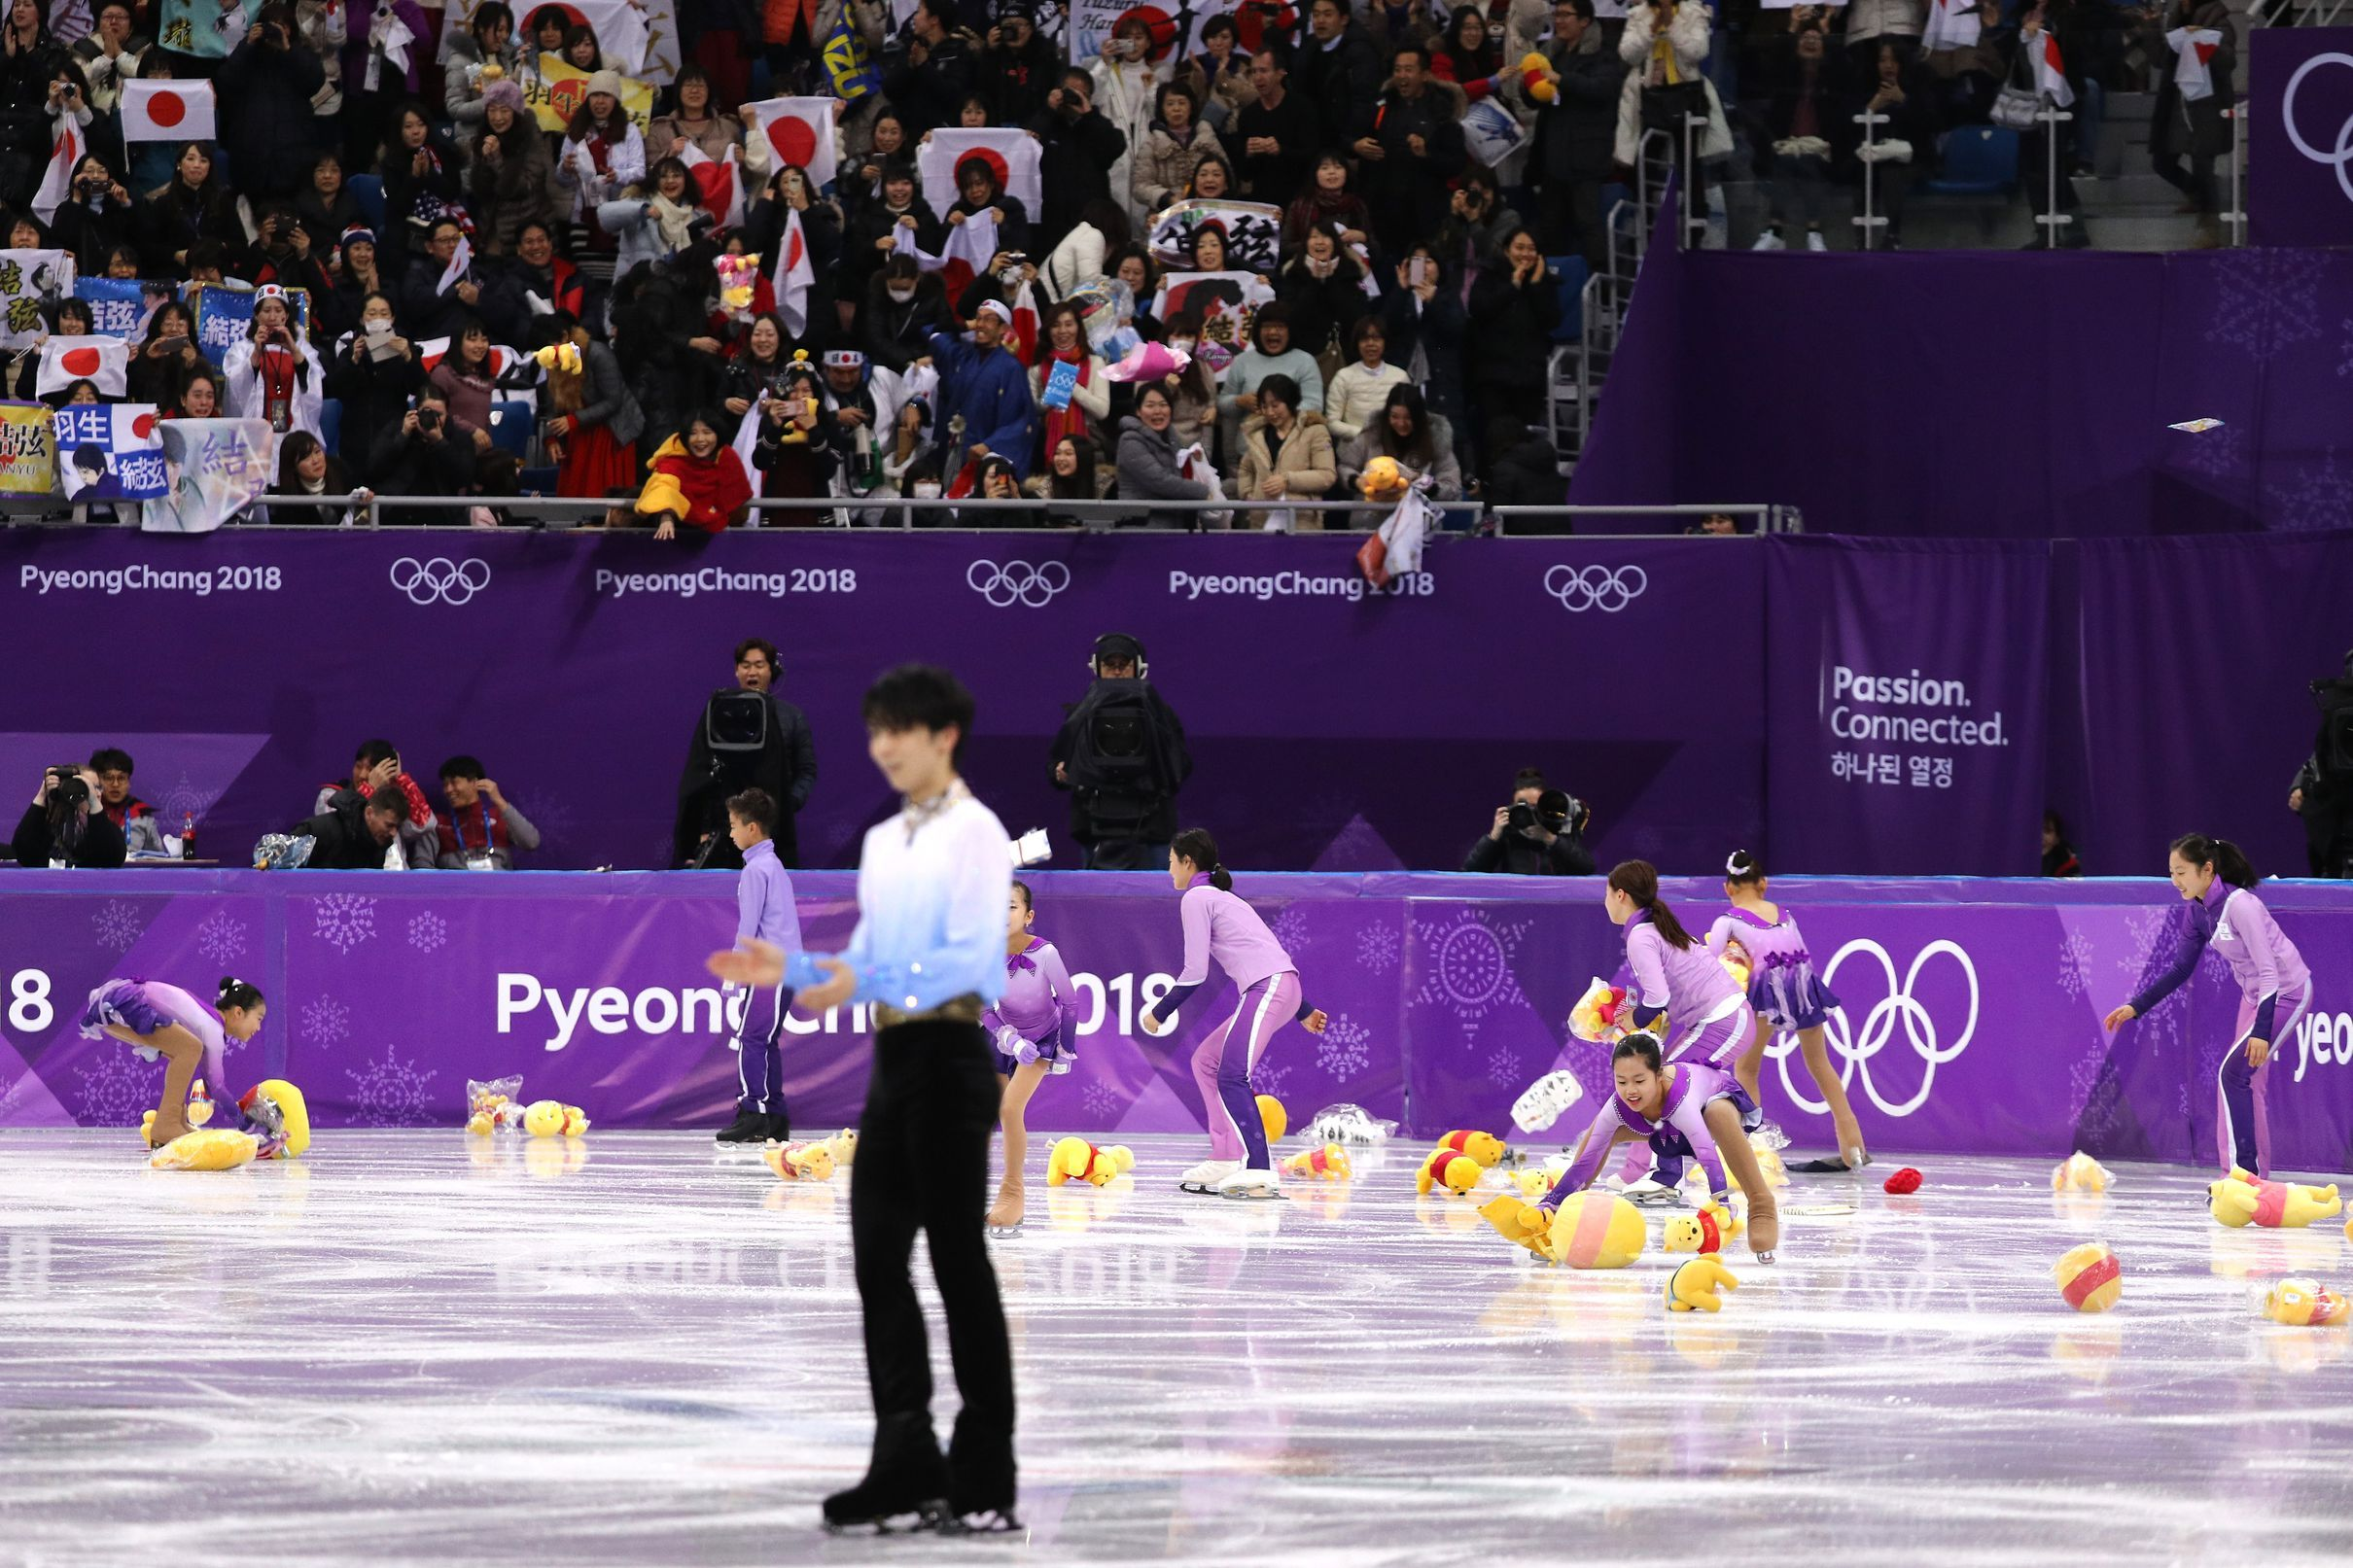 Yuzuru Hanyu dominates in men's figure skating short program